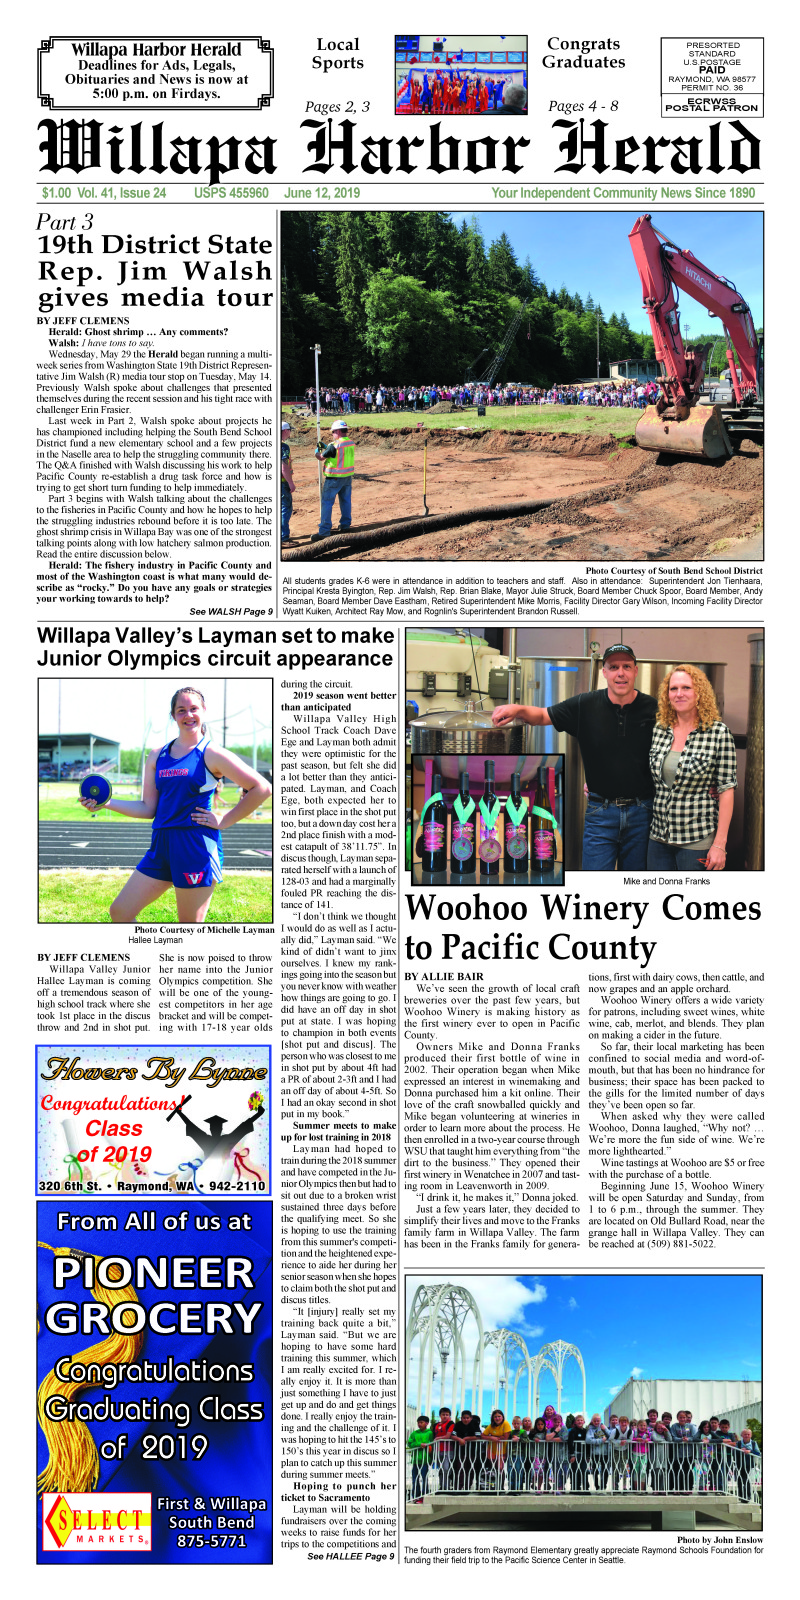 June 12, 2019 Willapa Harbor Herald